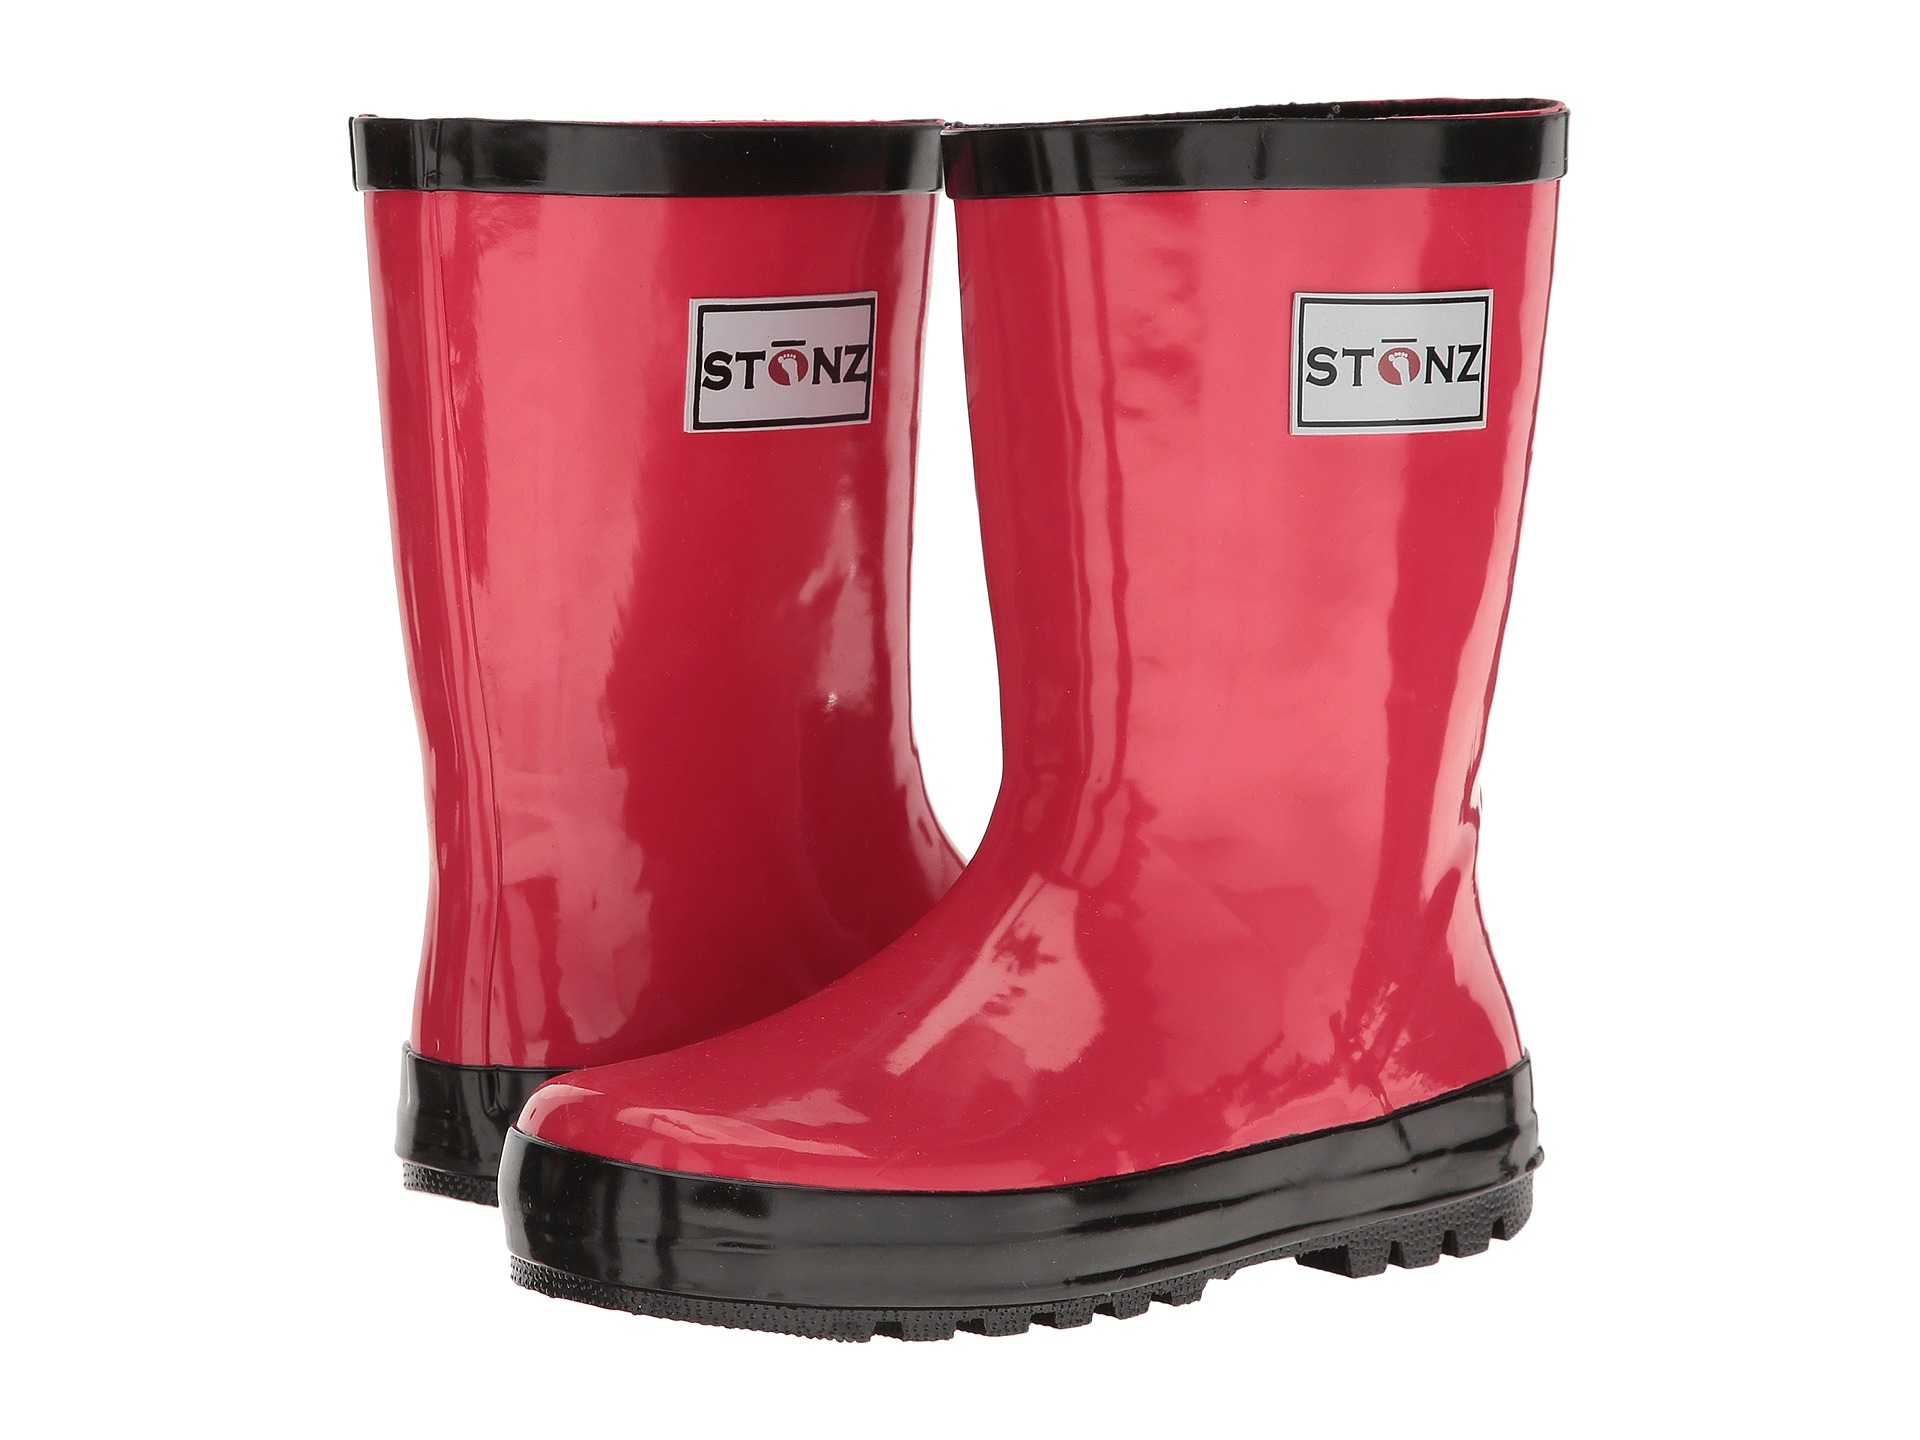 Stonz Rainboots (Infant/Little Kid/Big Kid) - Zappos.com Free ...